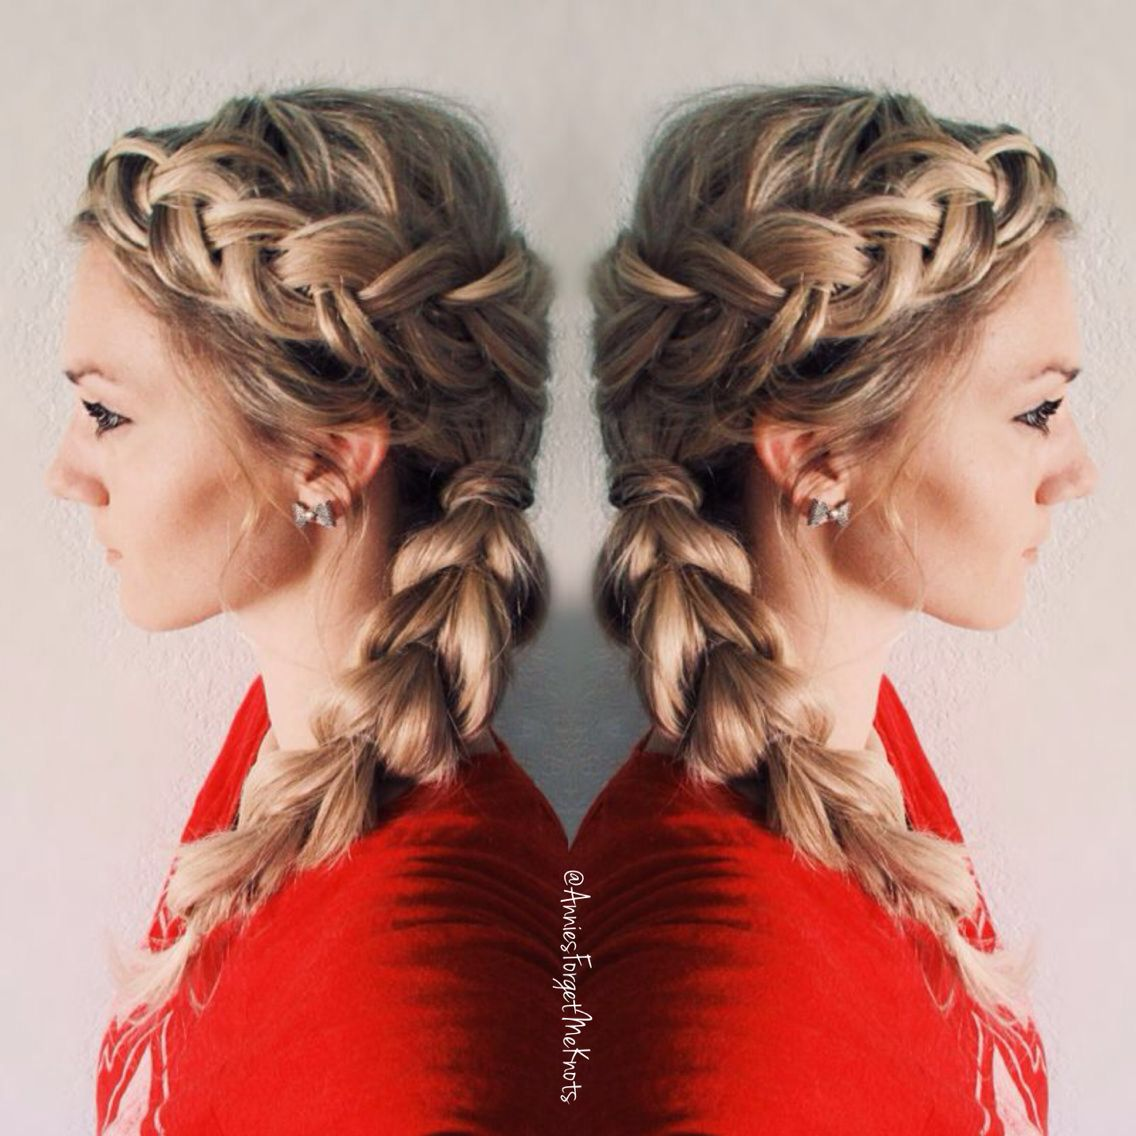 How To Dutch braid on top french braid wrapped around the bottom